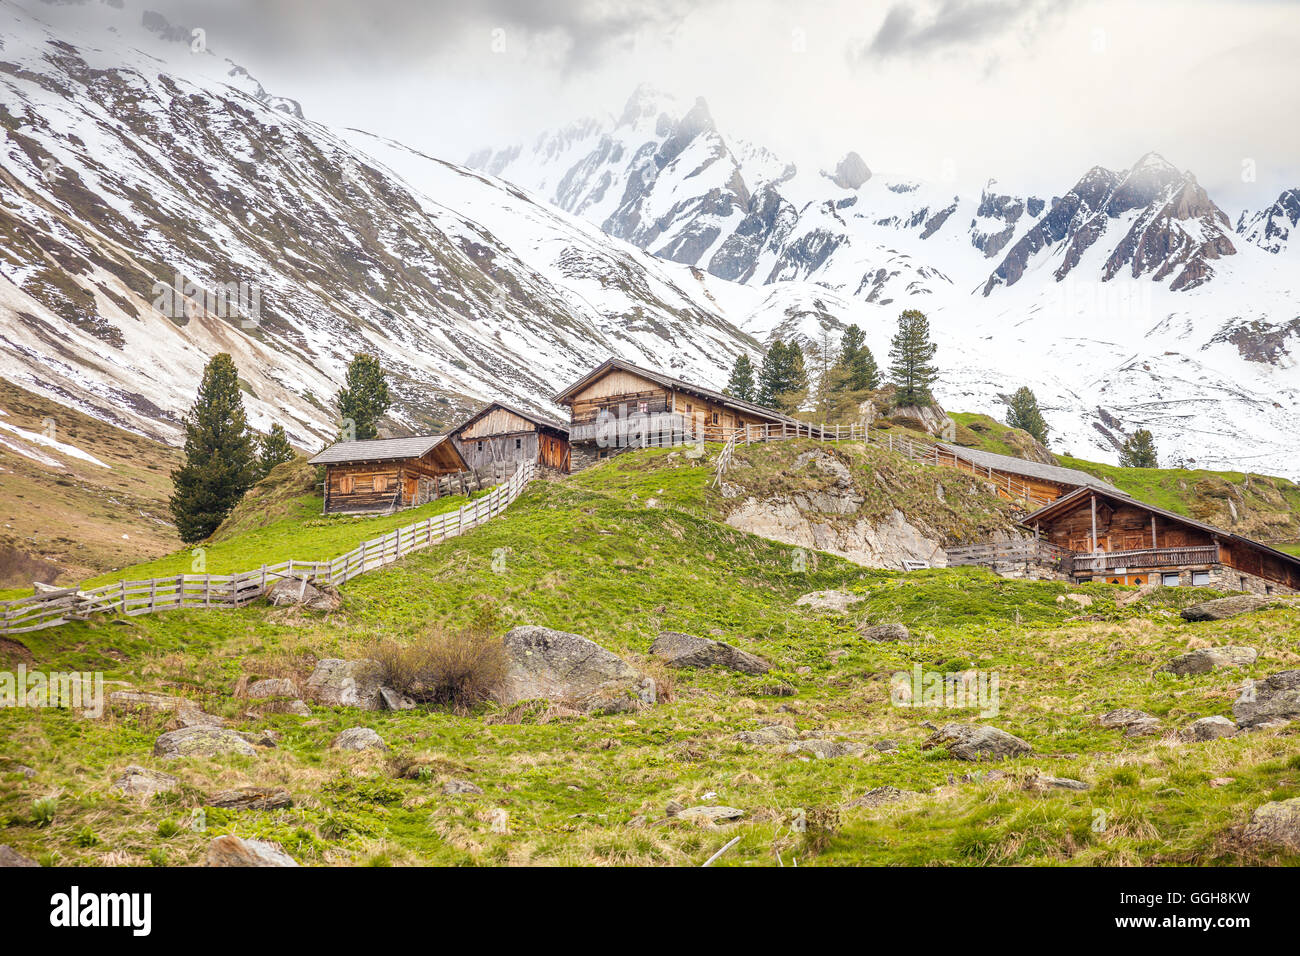 geography / travel, Italy, South Tyrol, Knuttenalm in the Reintal, Rein in Taufers, Additional-Rights-Clearance - Stock Image